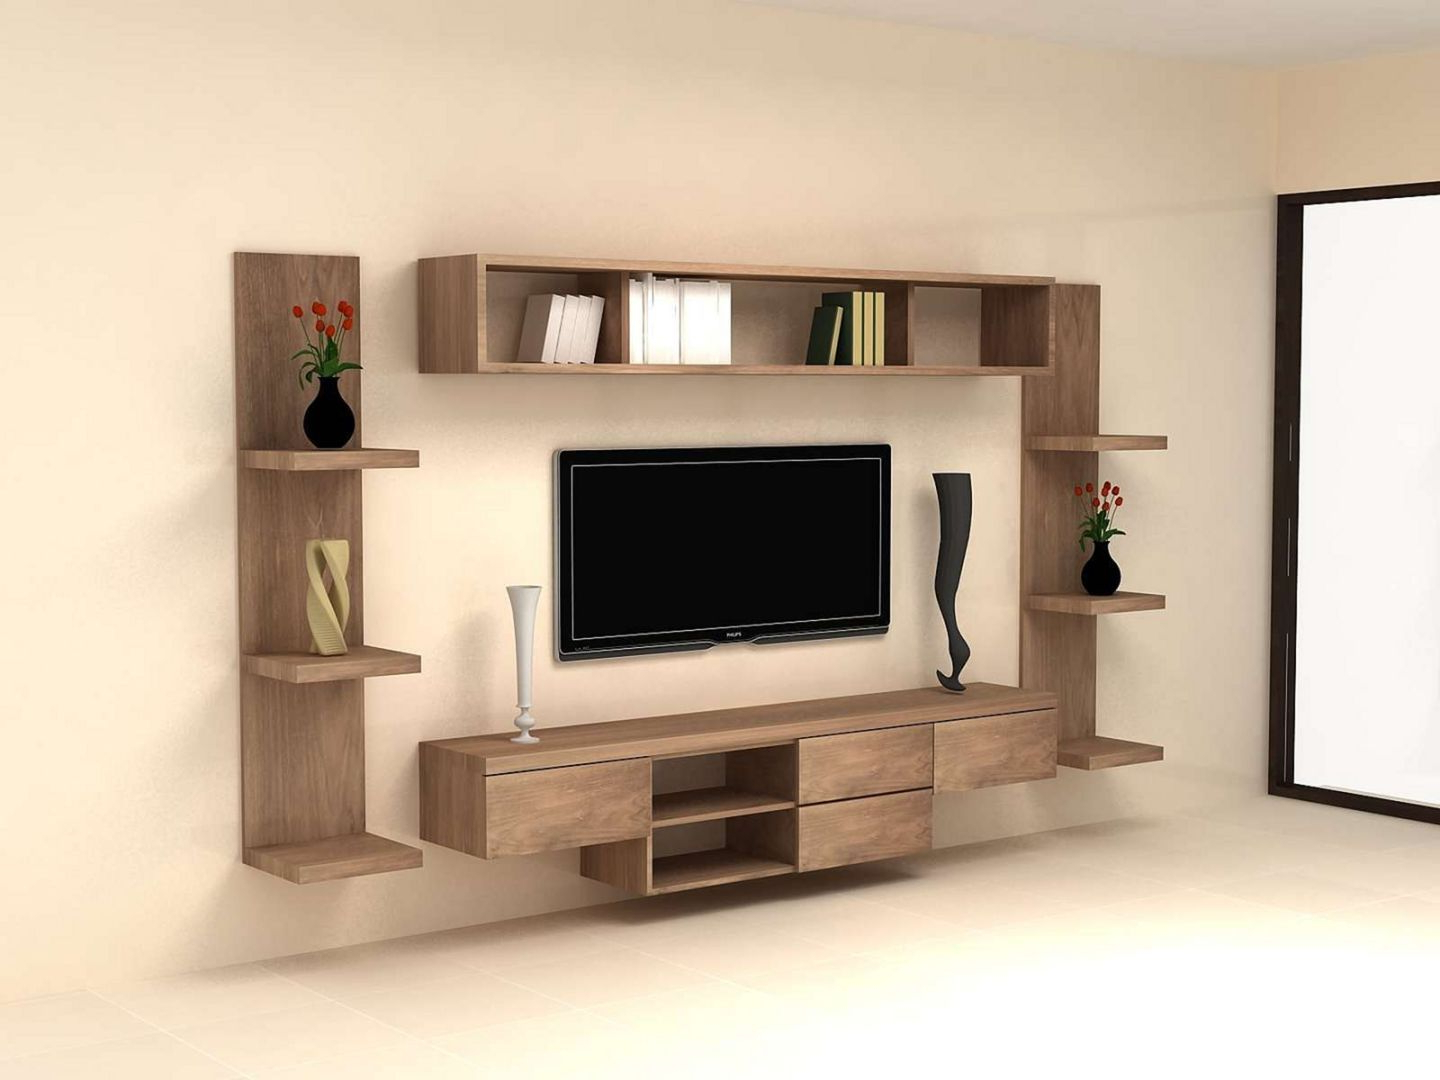 Home Decoration Ideas (View 3 of 20)